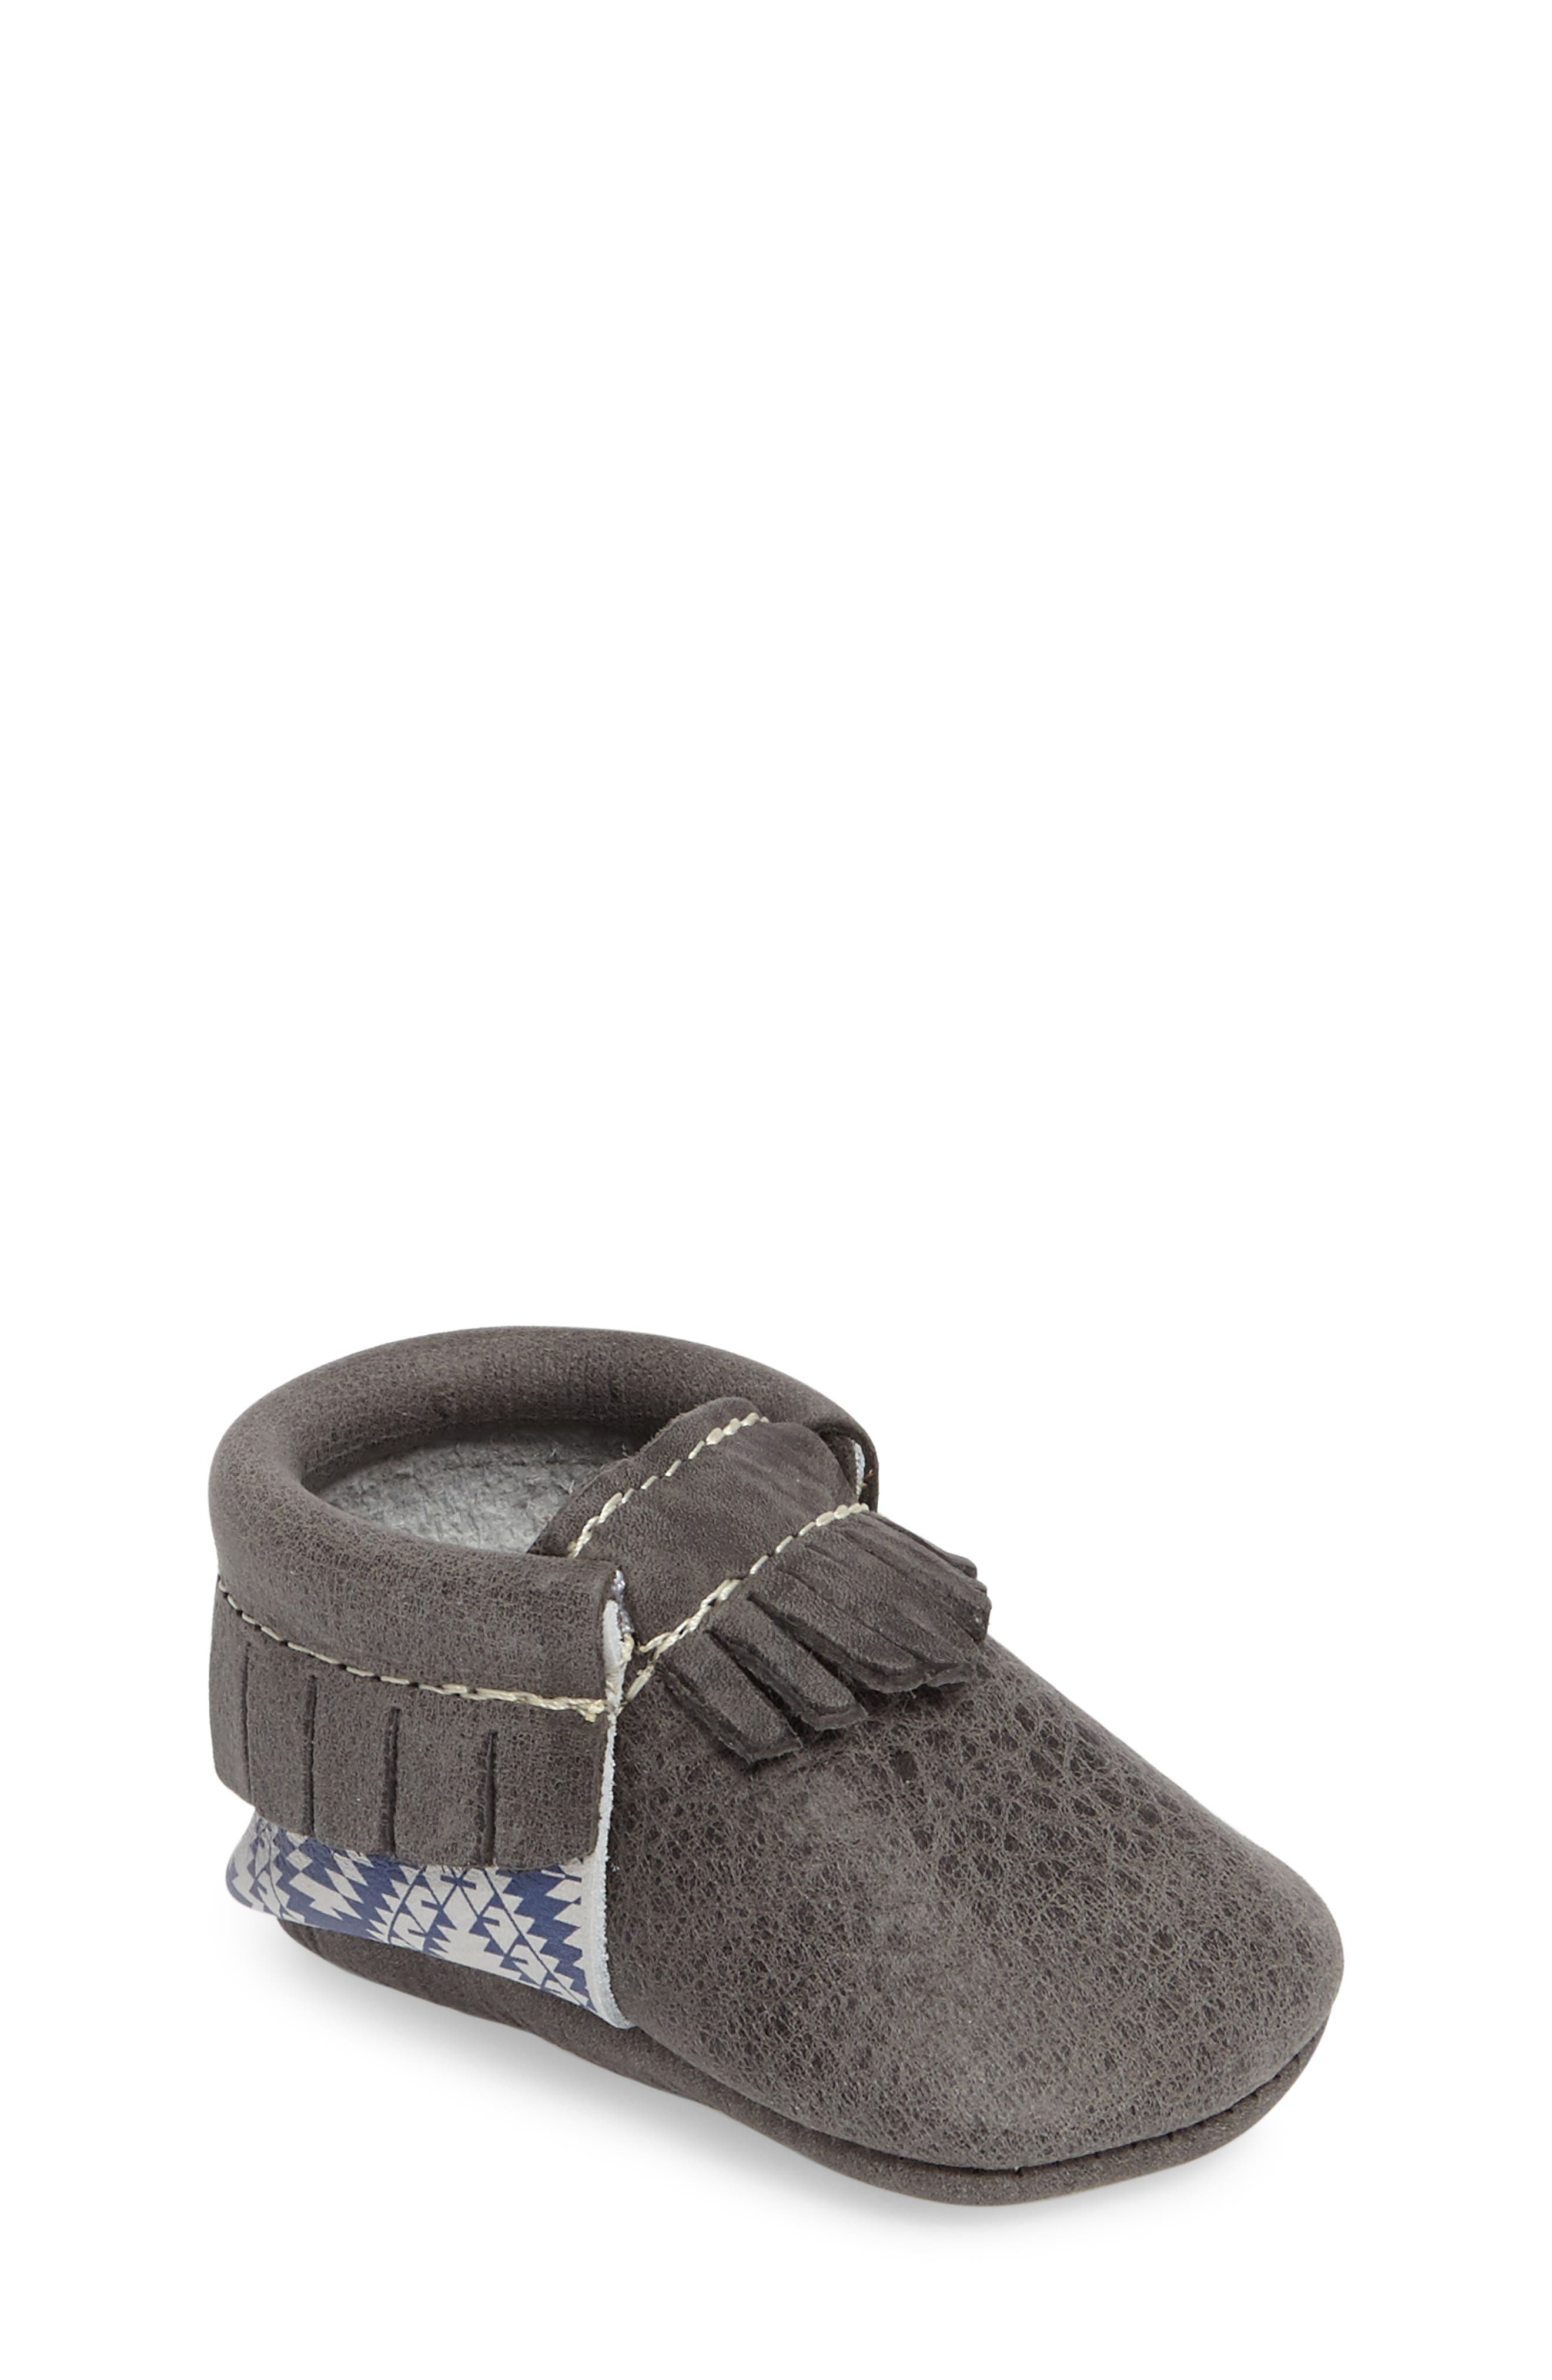 Leather Moccasin,                             Main thumbnail 1, color,                             021